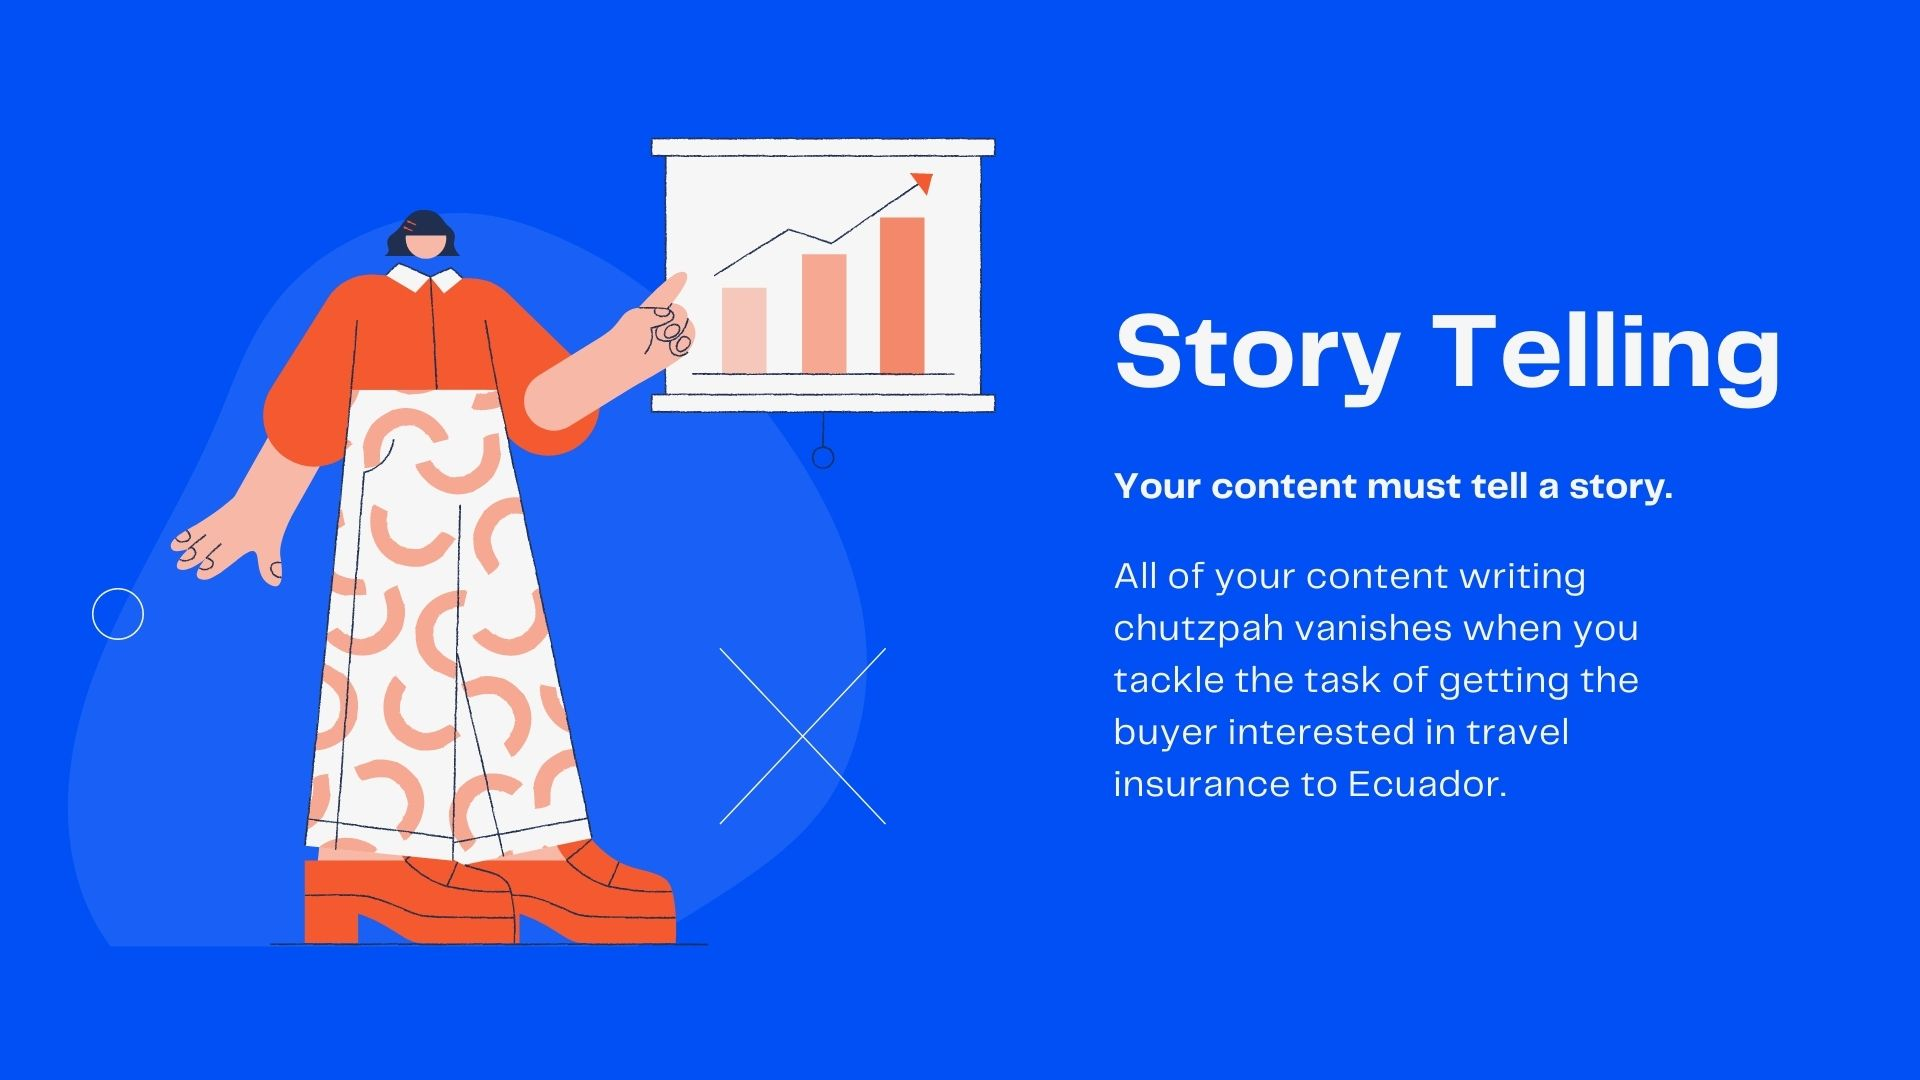 Tell a story with your content